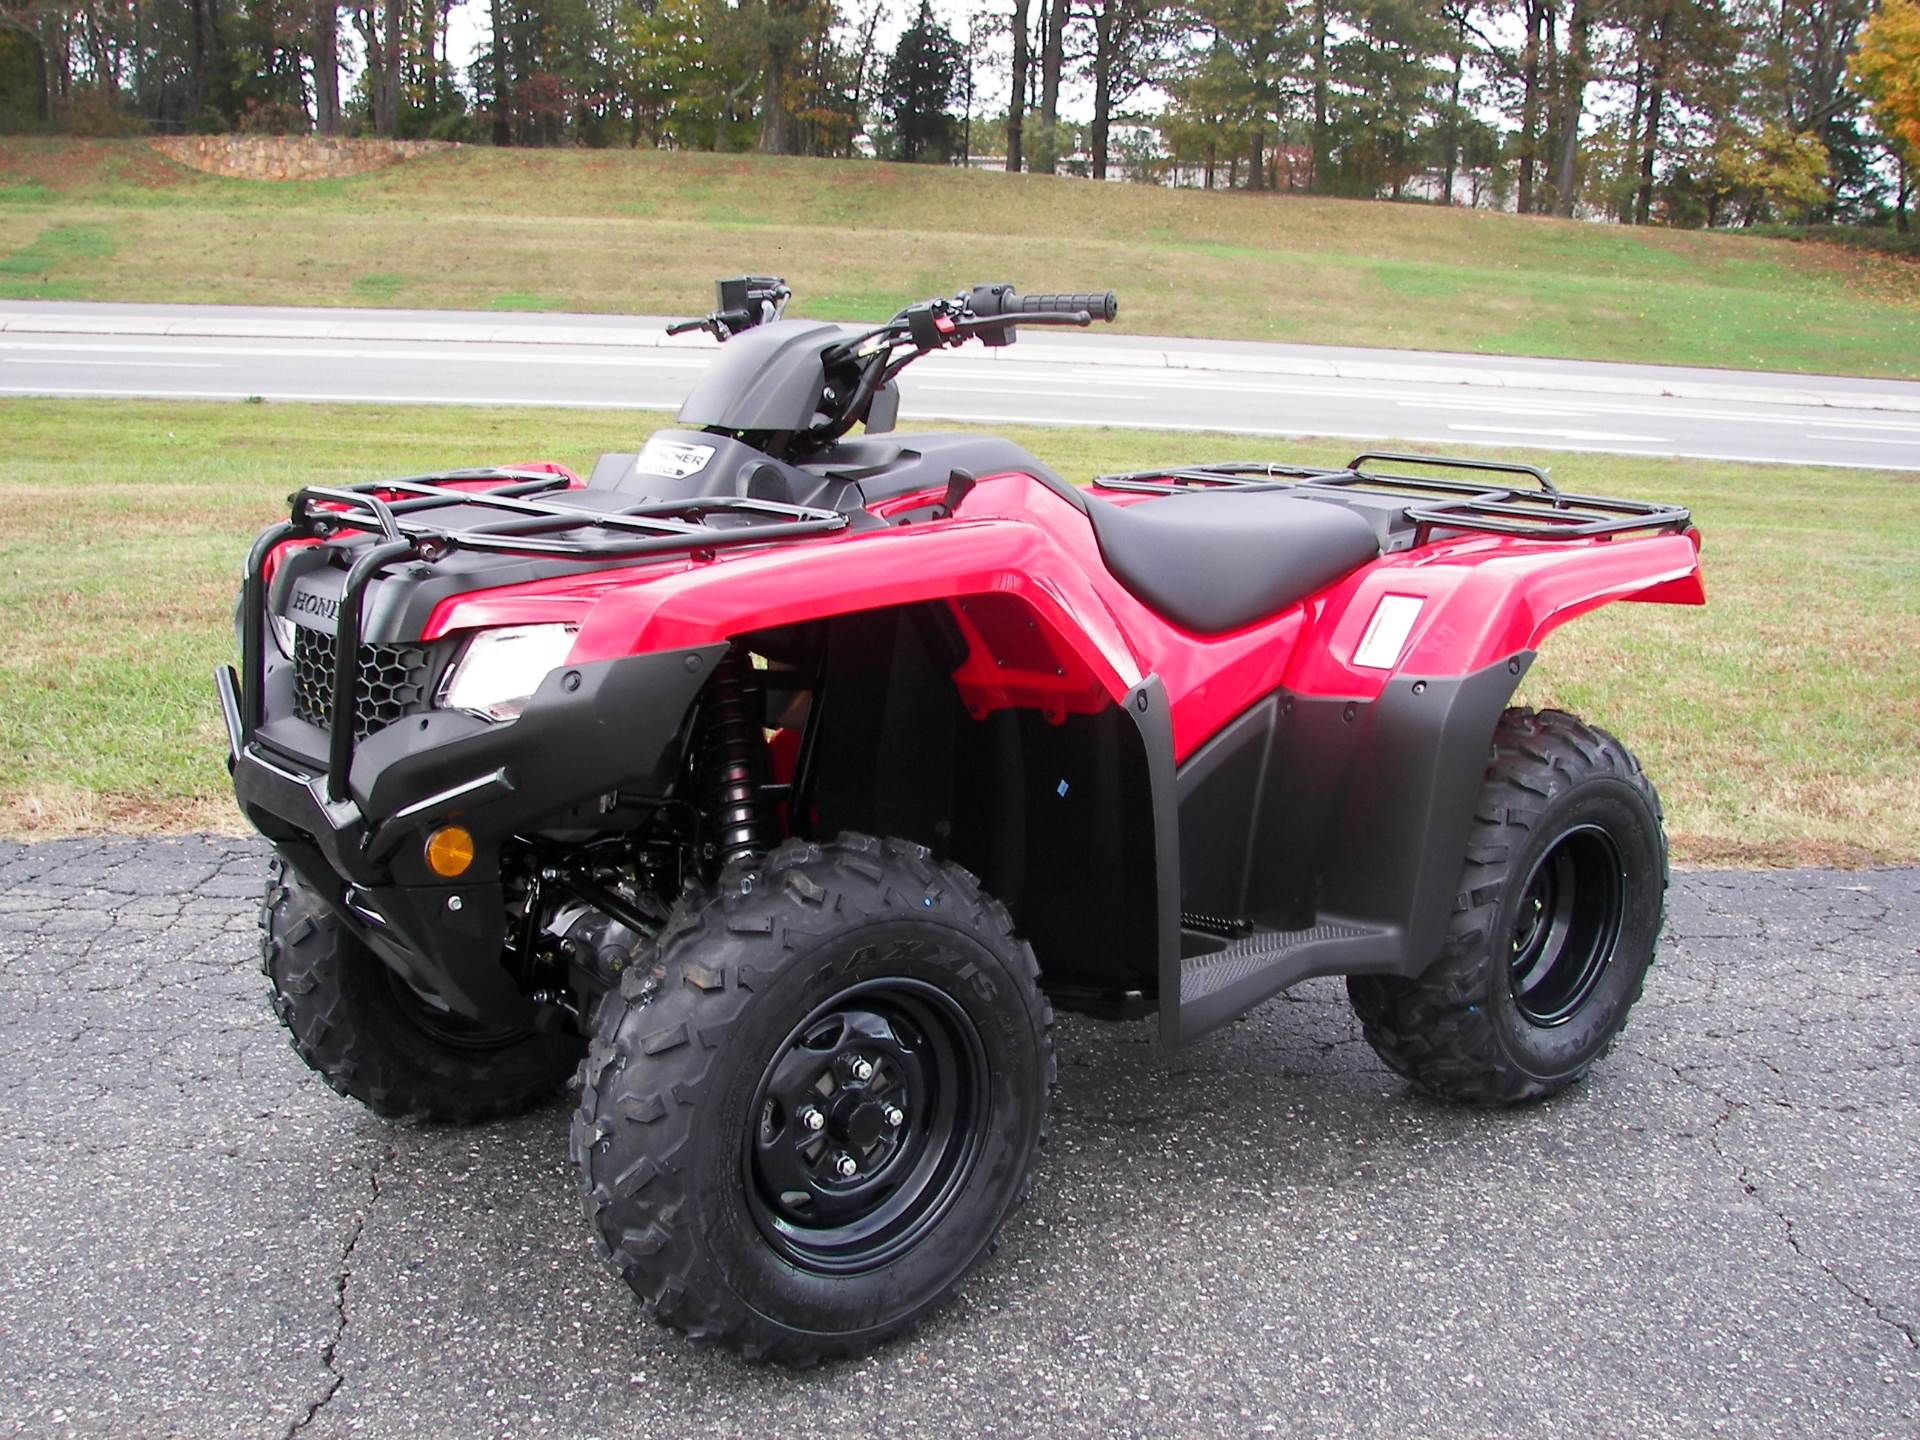 2019 Honda FourTrax Rancher 4x4 in Shelby, North Carolina - Photo 4